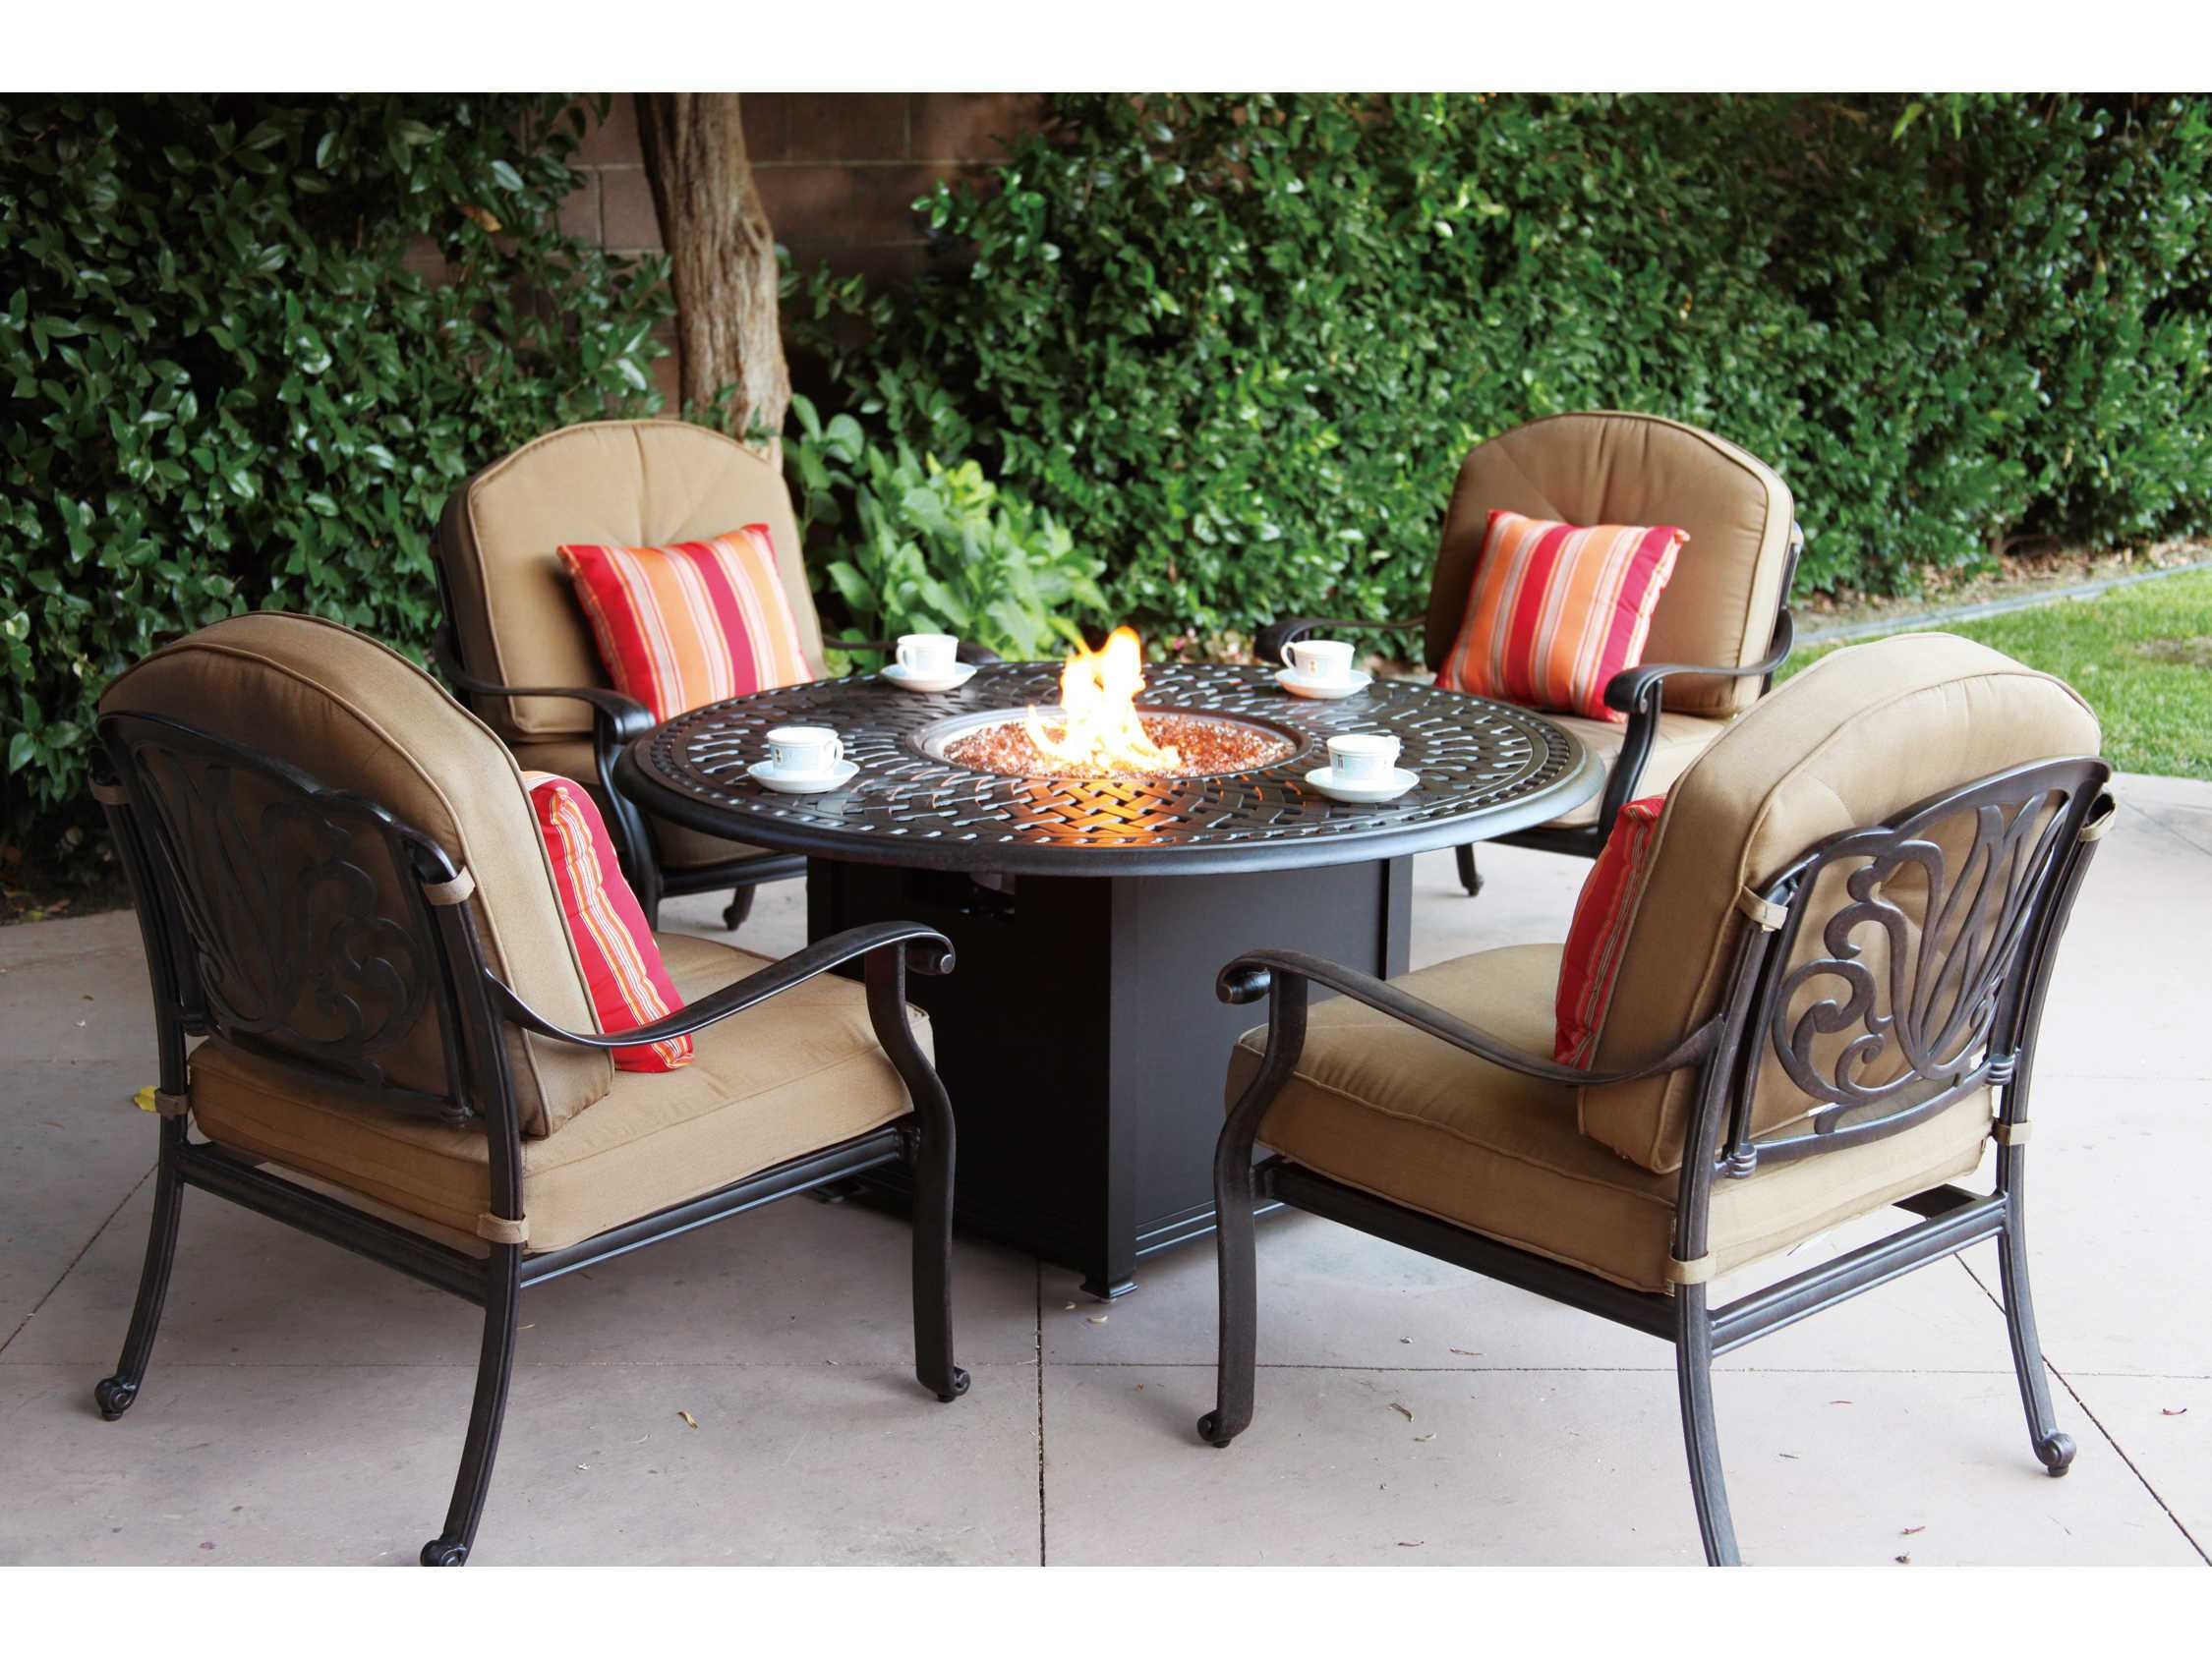 Best ideas about Fire Pit Dining Table . Save or Pin Darlee Outdoor Living Series 60 Cast Aluminum 60 Round Now.